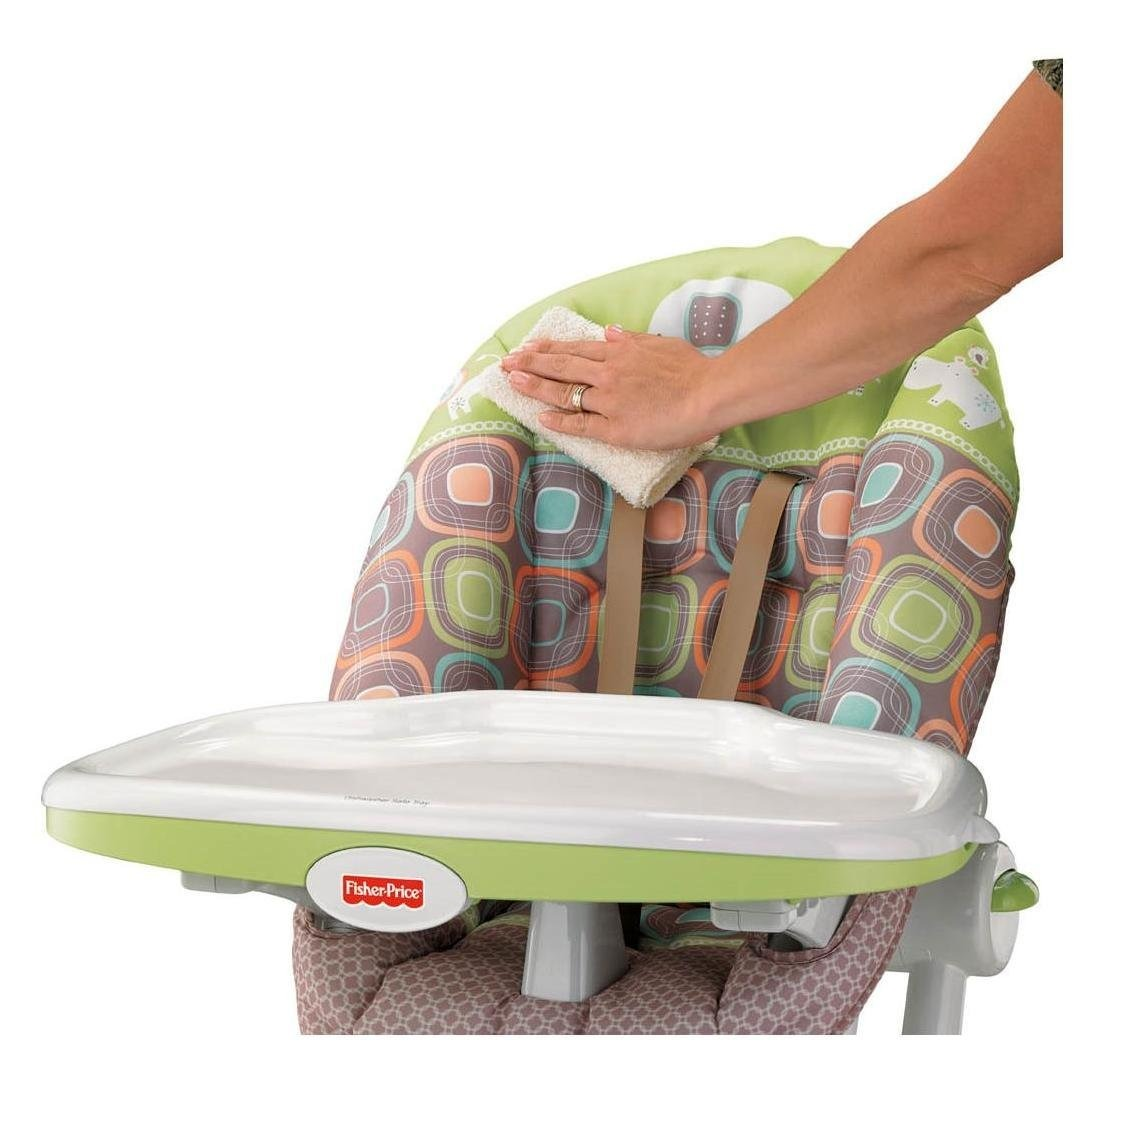 Silla para comer periquera fisher price coco sorbet bebe for Silla fisher price para comer